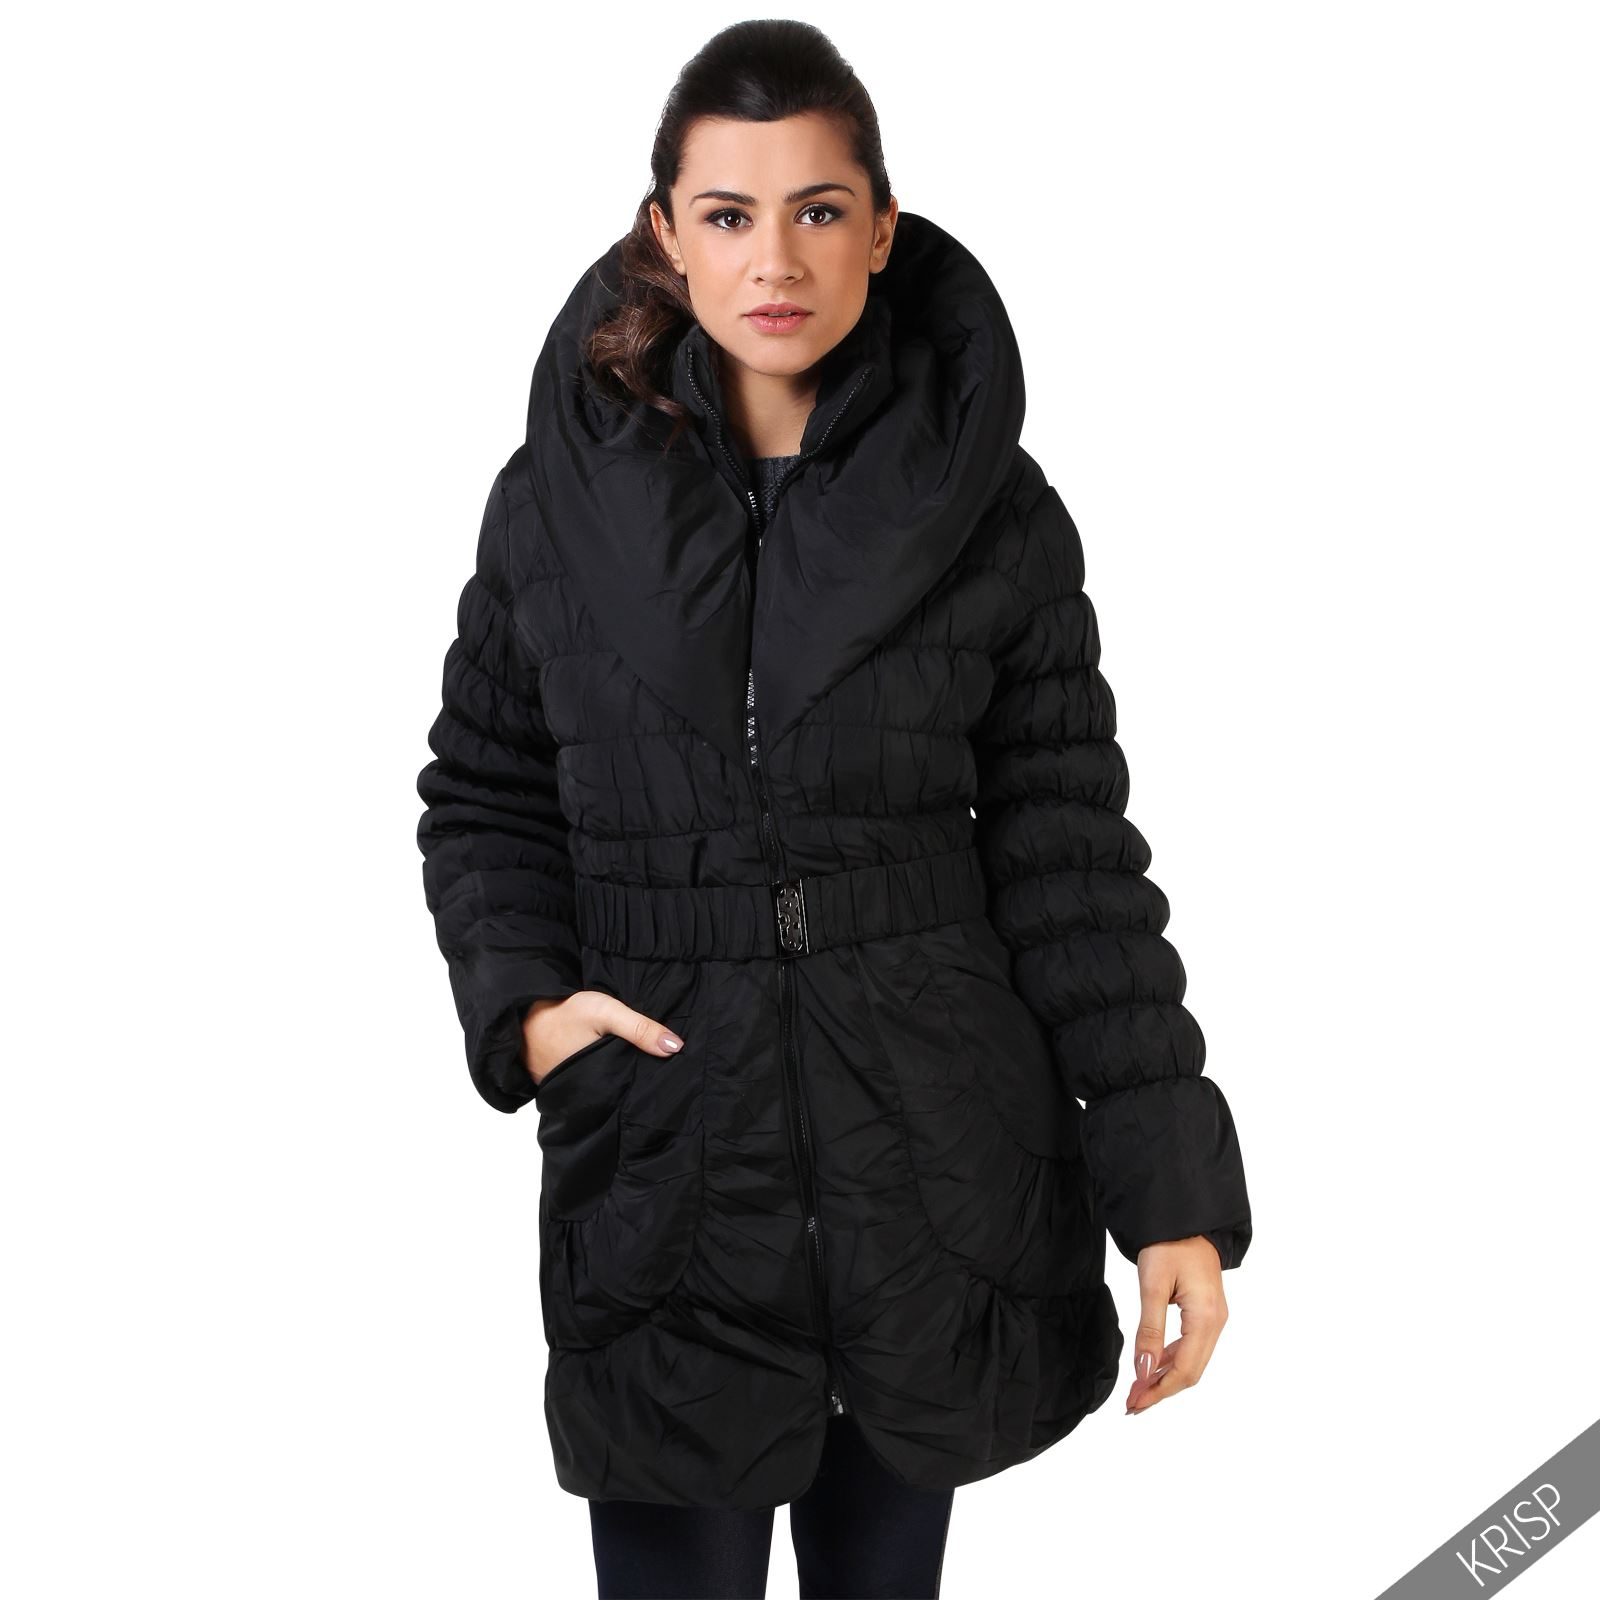 damen warme gesteppte winterjacke parka jacke xxl. Black Bedroom Furniture Sets. Home Design Ideas